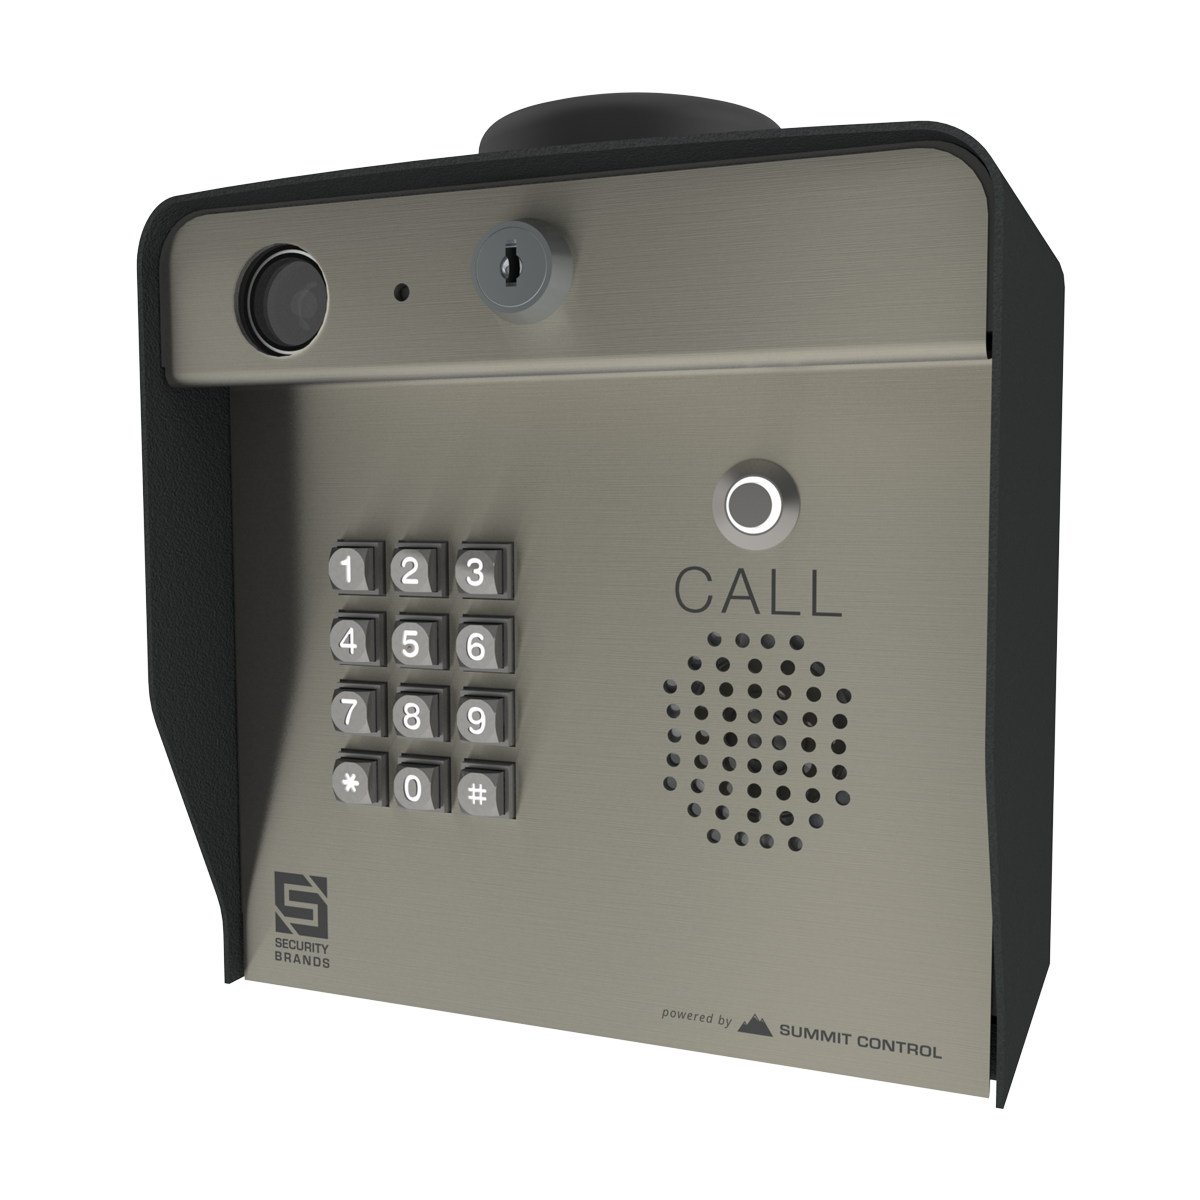 ascent x1 – cellular telephone entry system with keypad